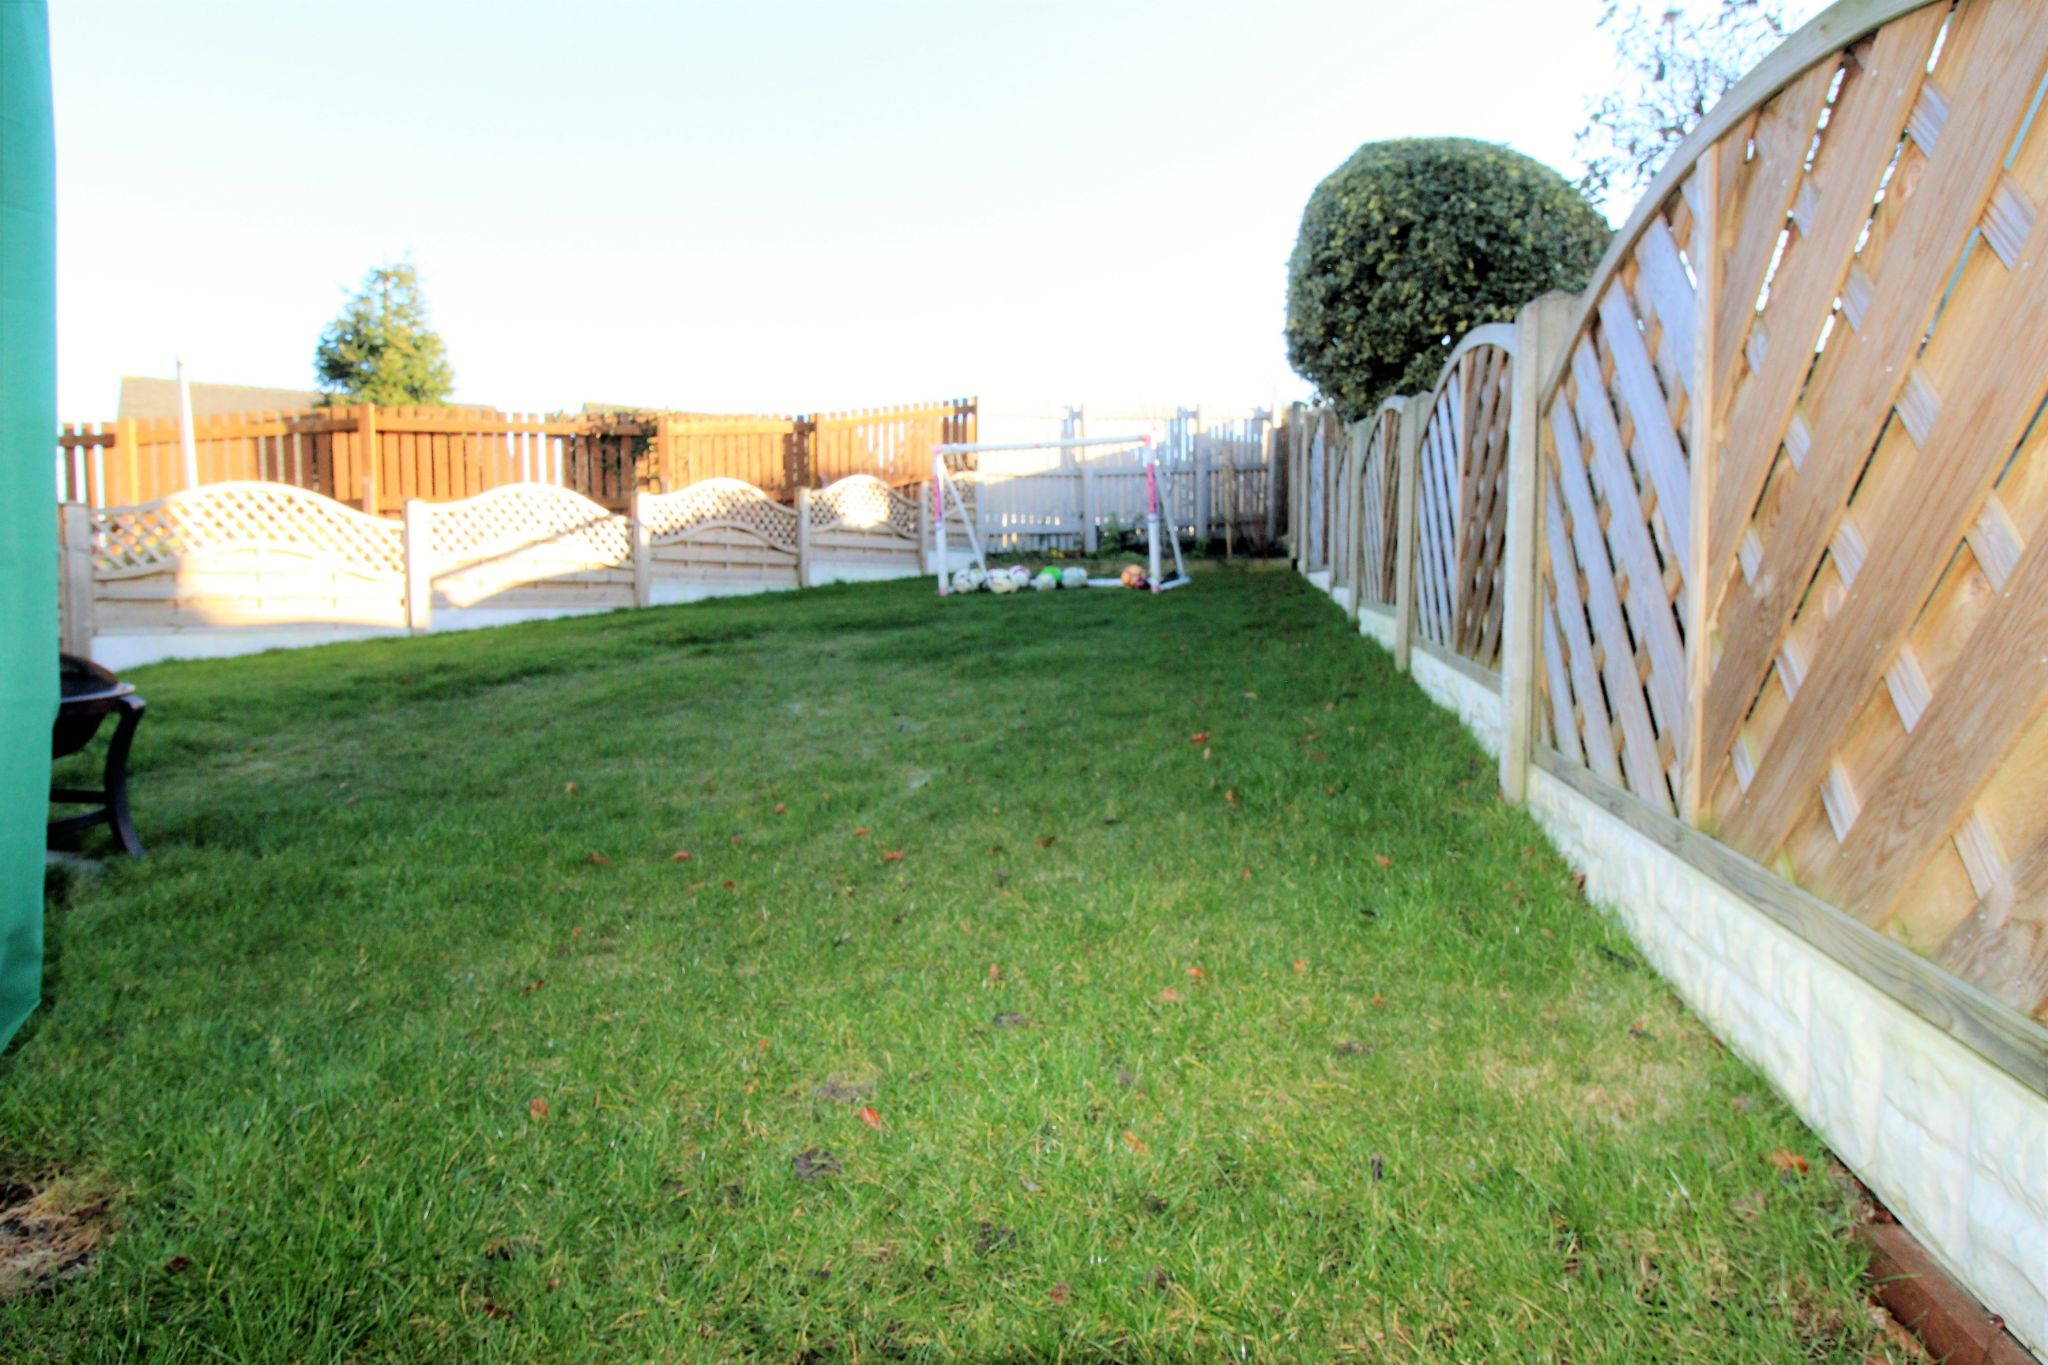 4 bedroom semi-detached bungalow SSTC in Brighouse - Lawned garden